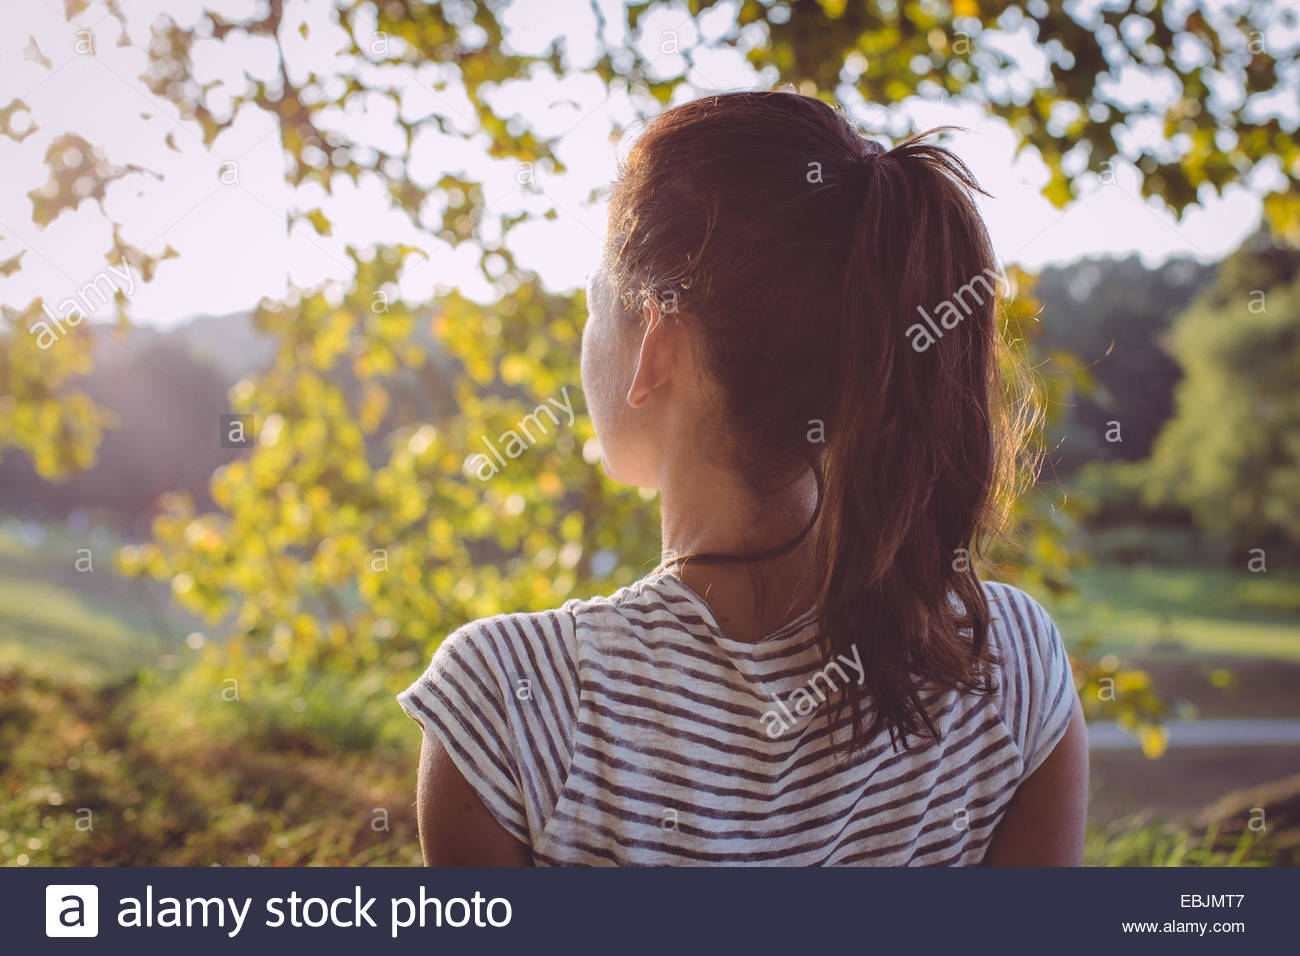 Rear view of mid adult woman looking at landscape view, Tuscany, Italy - Stock Image